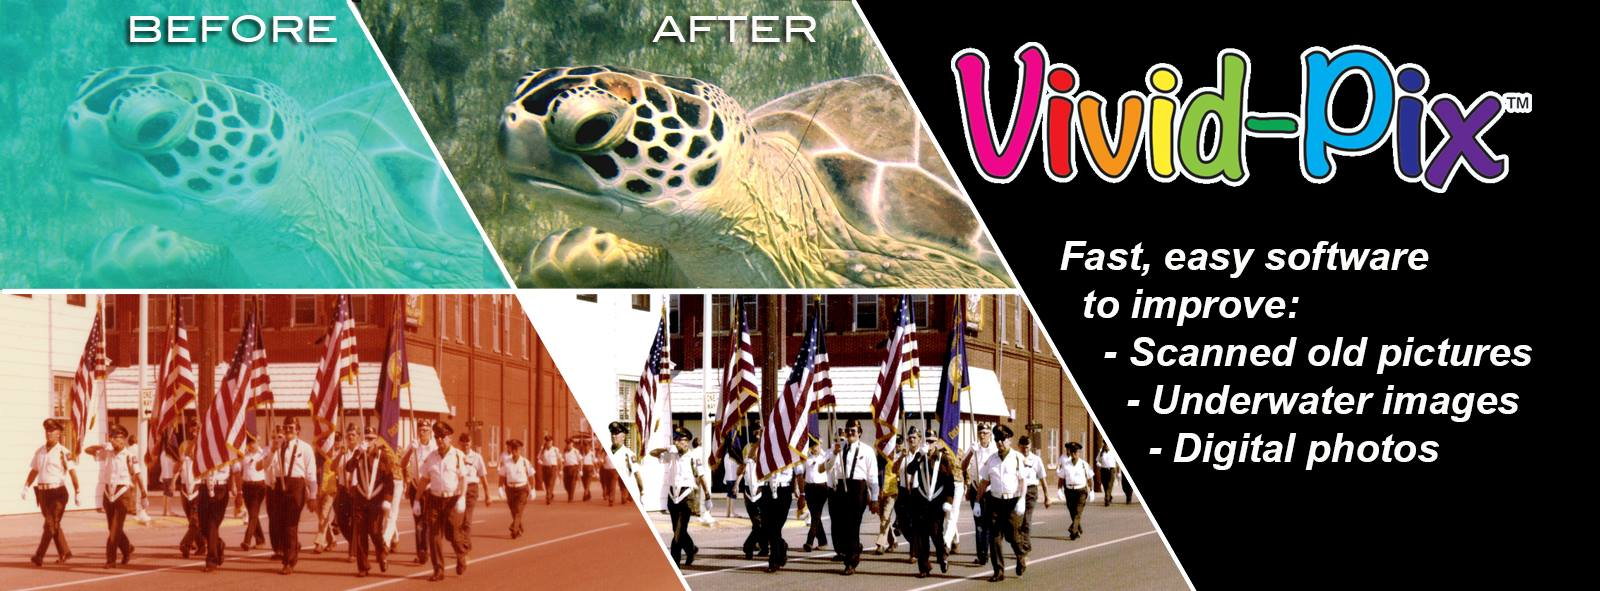 Vivid-Pix | Fast, easy software to improve your images